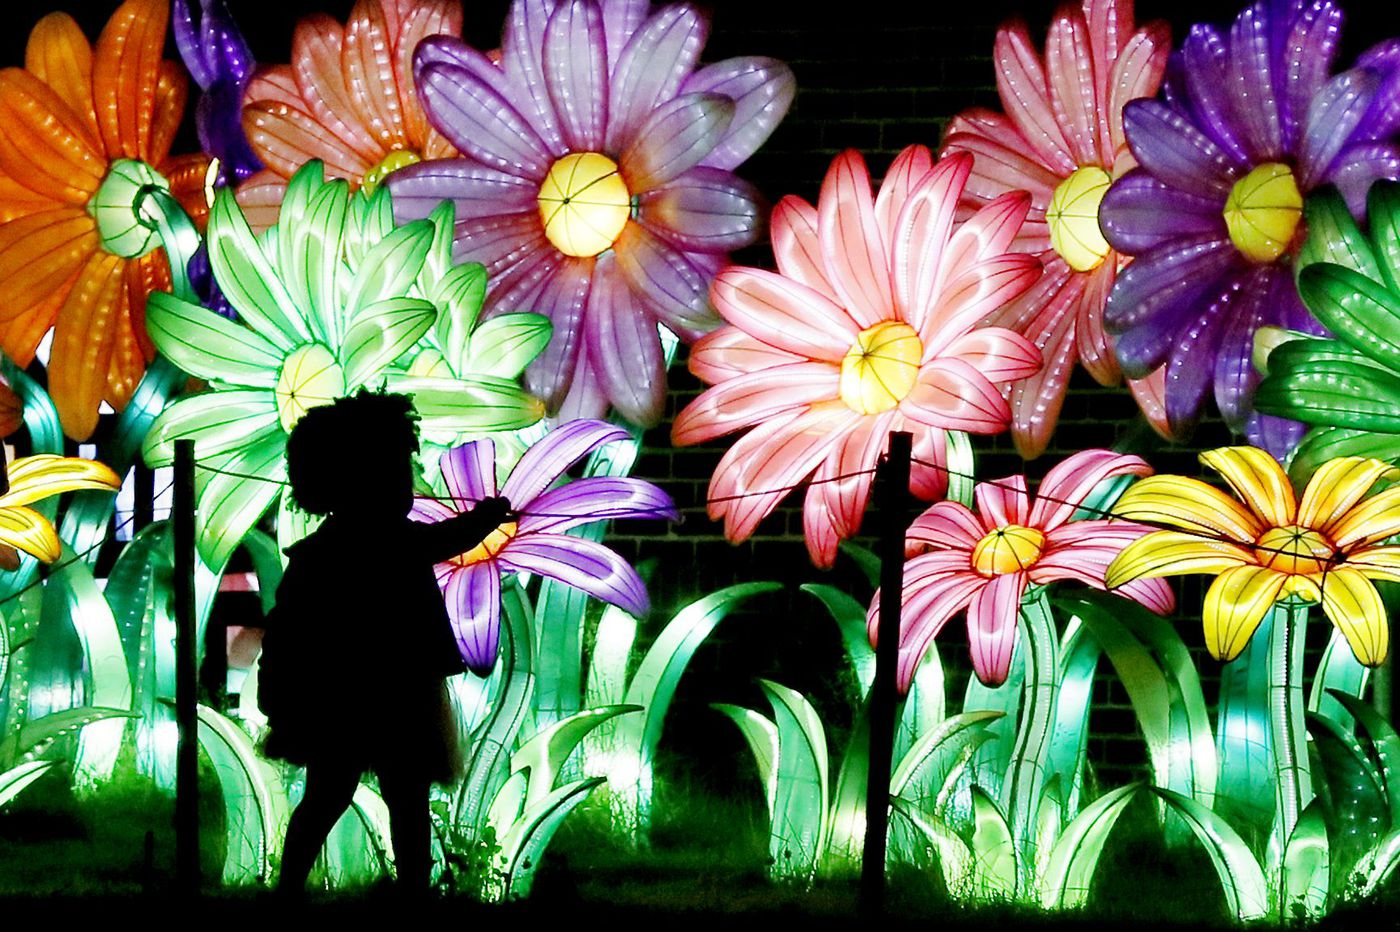 Chinese Lantern Festival extended to July 8